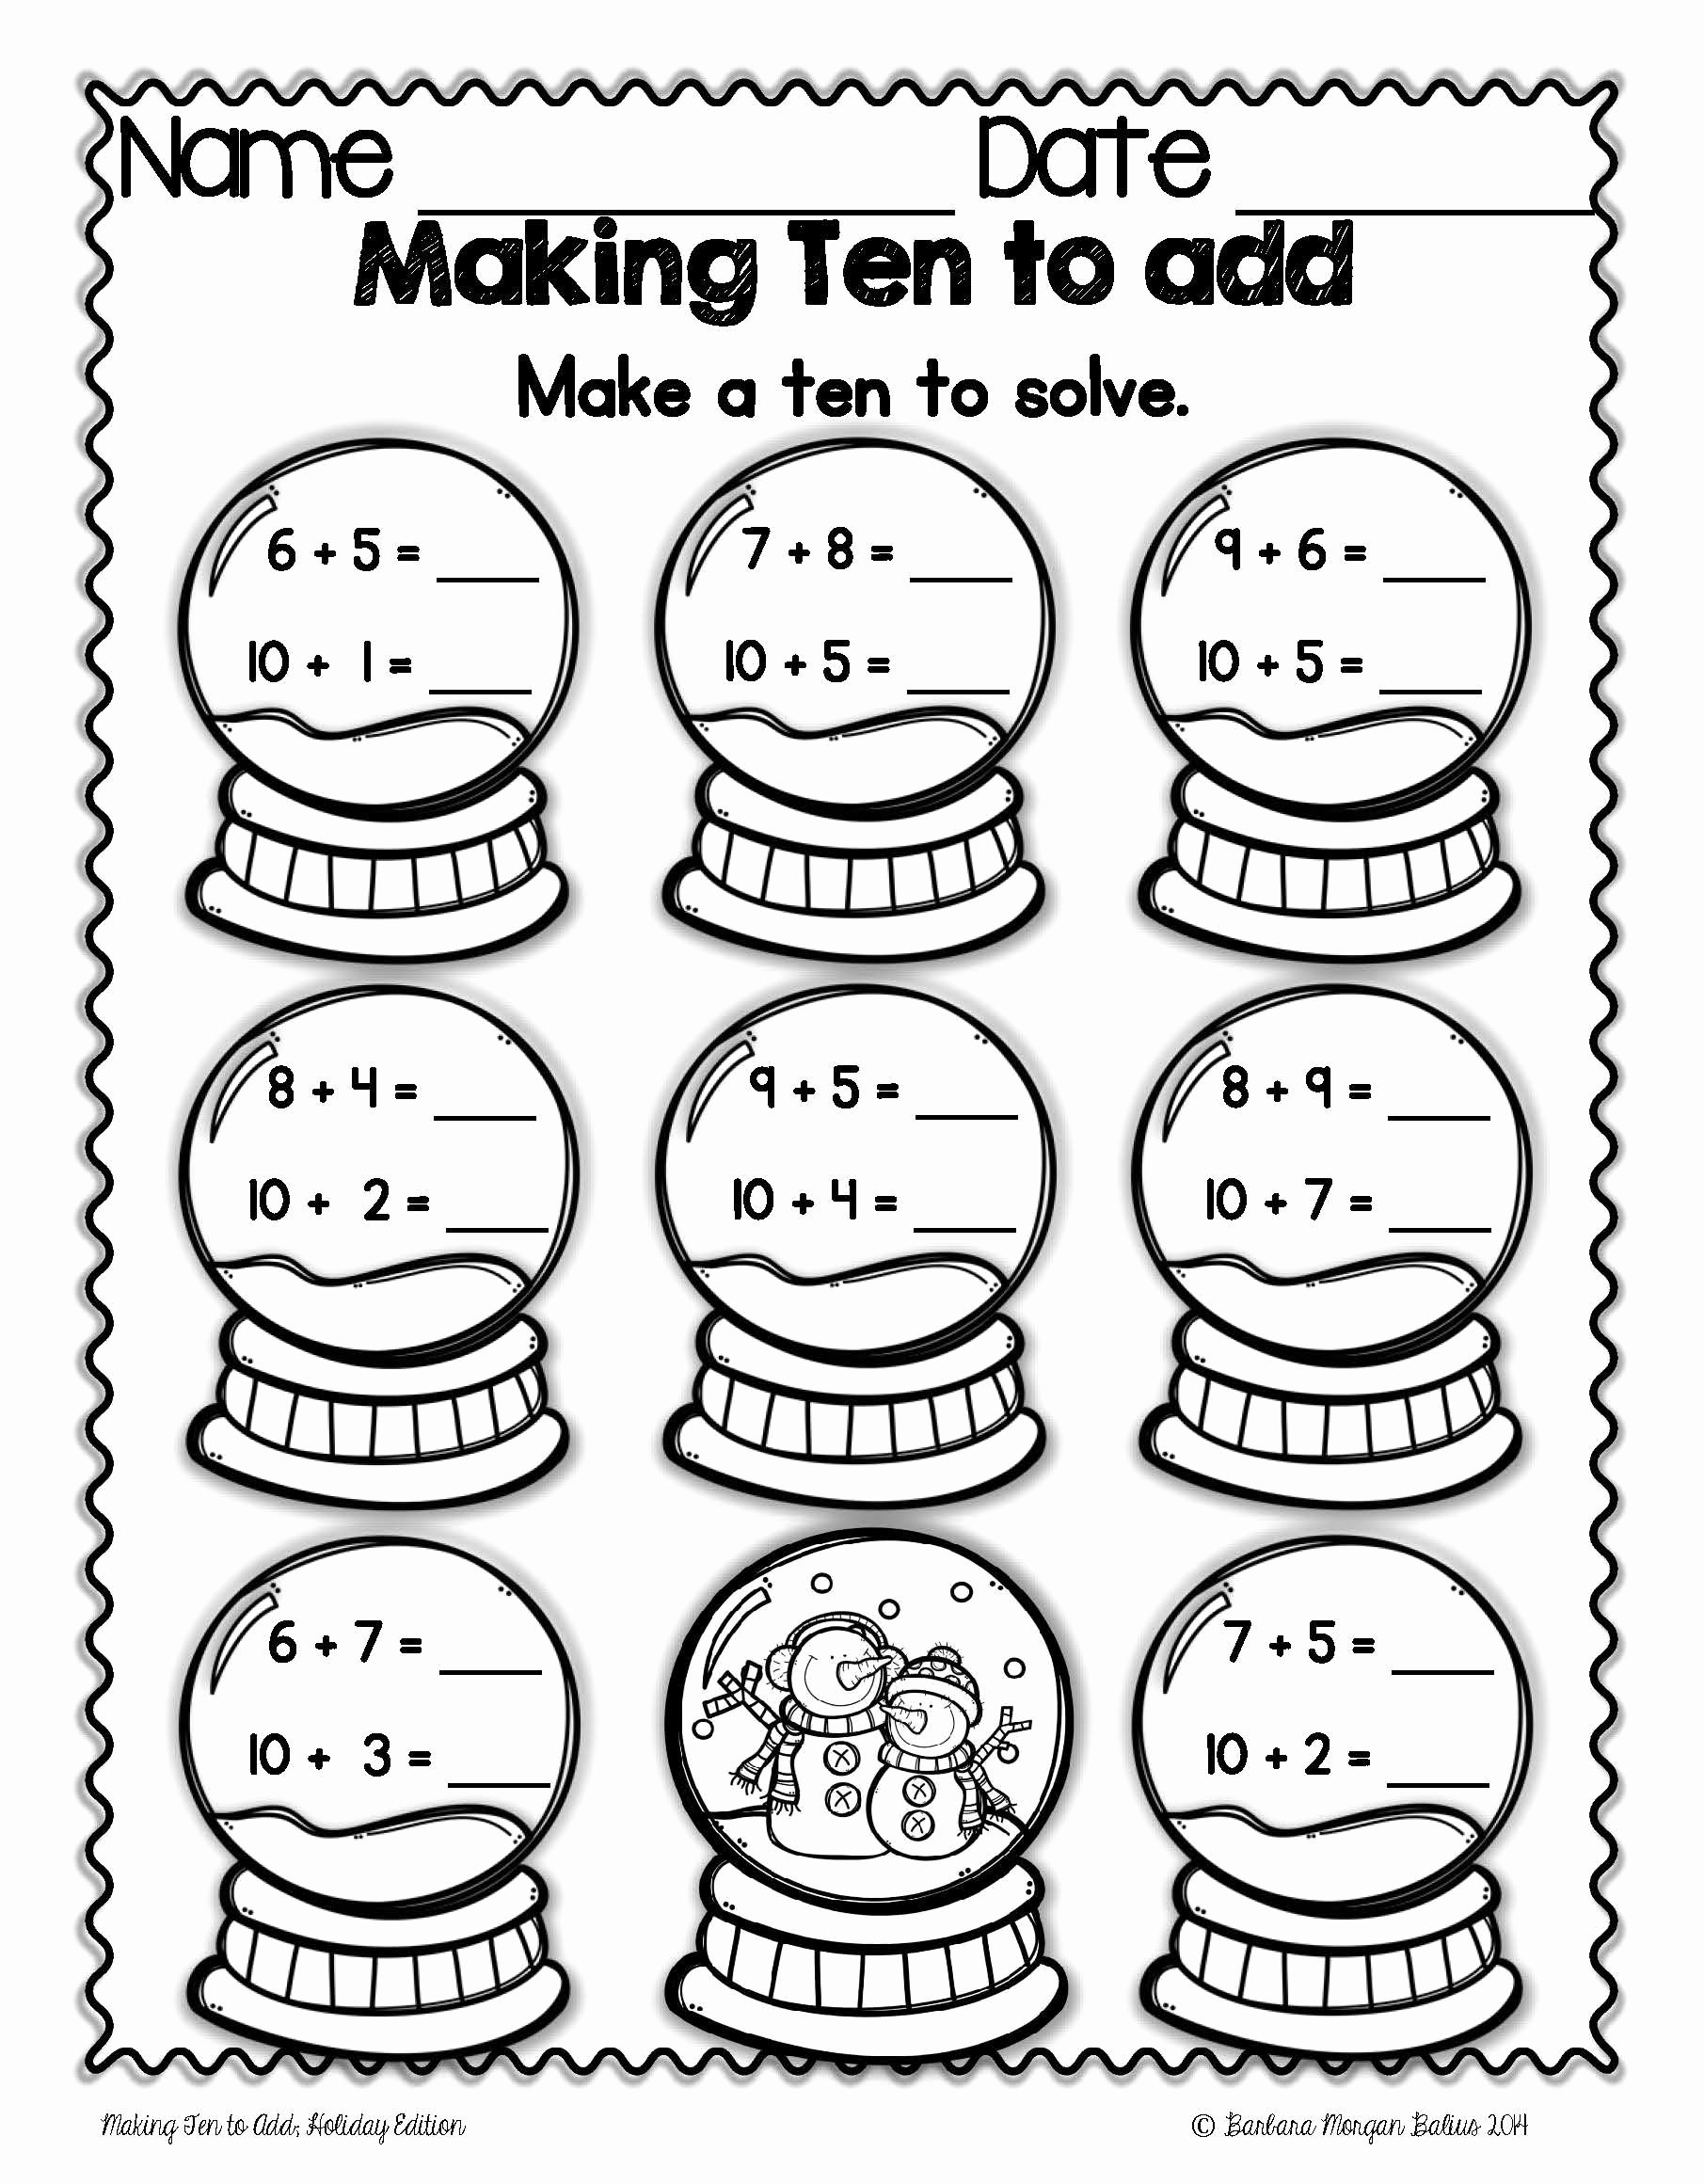 Christmas Math Worksheets 3rd Grade Best Of Worksheets Christmas Math Making Ten to Mega Holiday